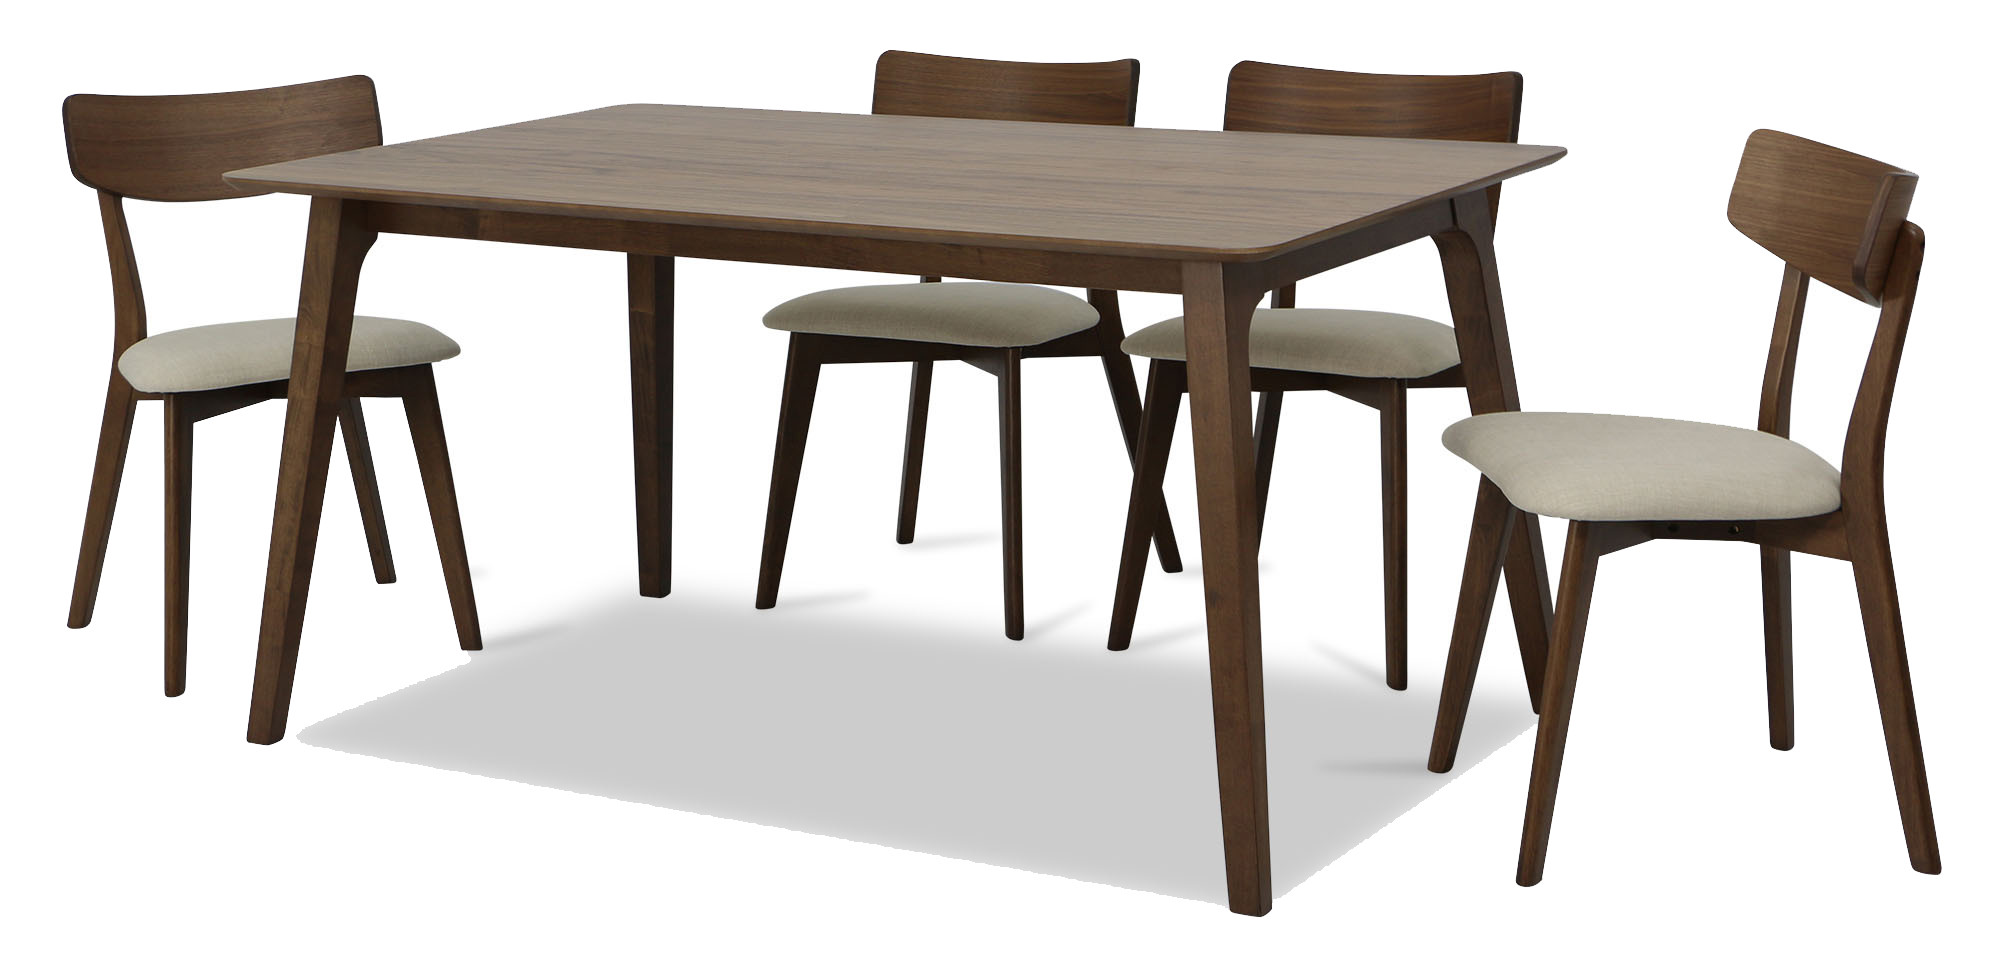 customer fortytwo b reviews ross dining d cor room table set home furniture dinning